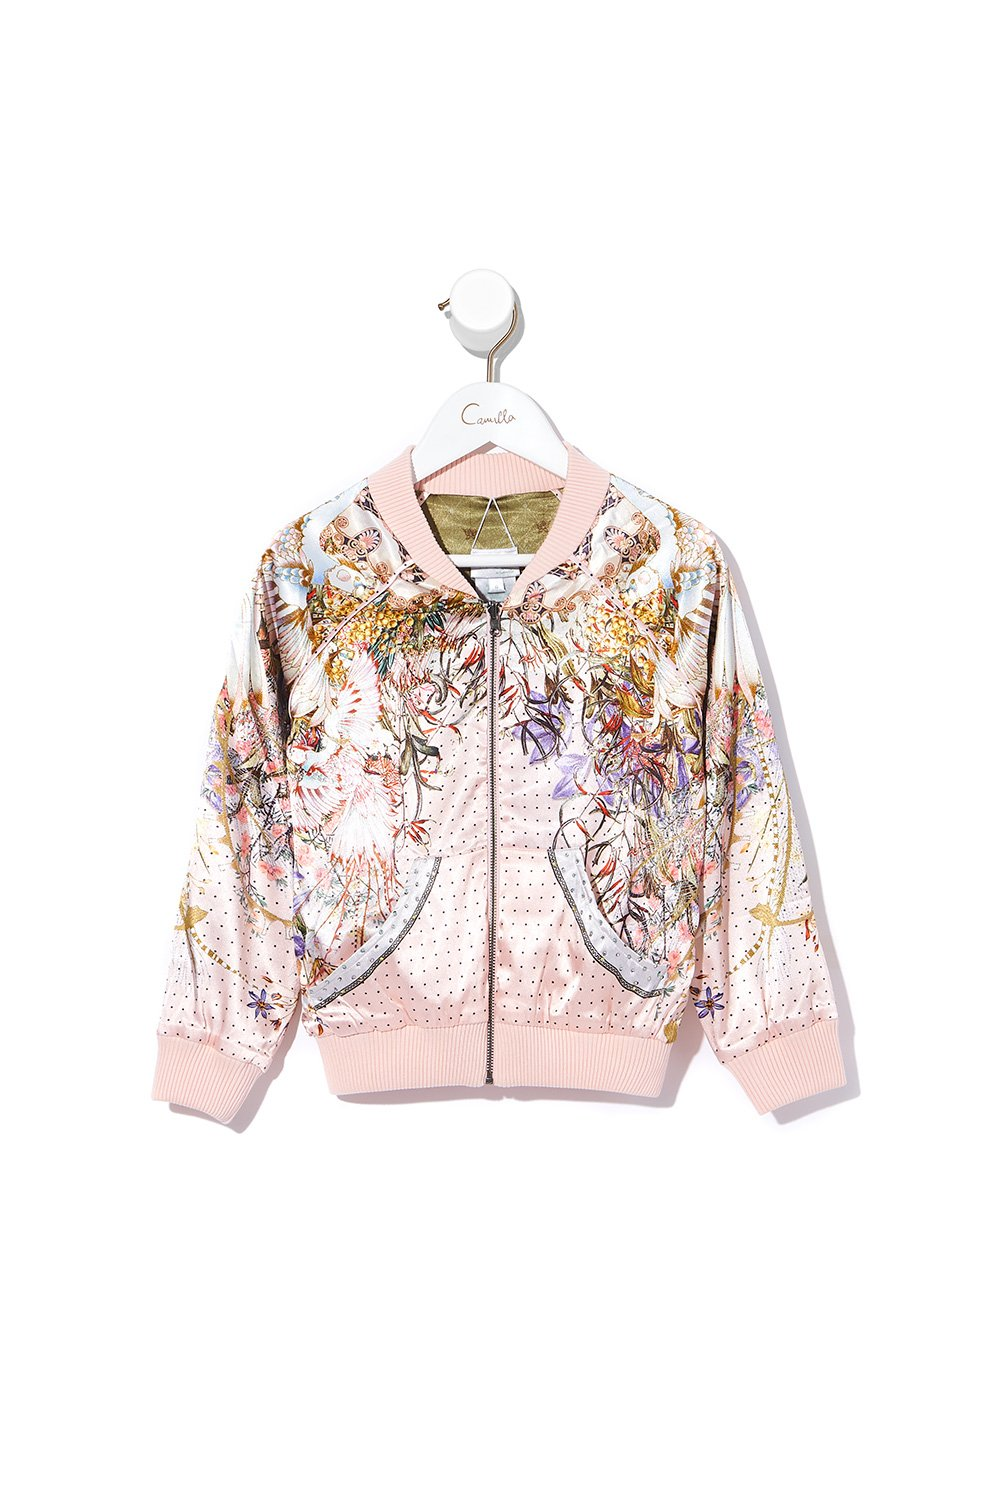 INFANTS REVERSIBLE BOMBER JACKET KINDRED SKIES